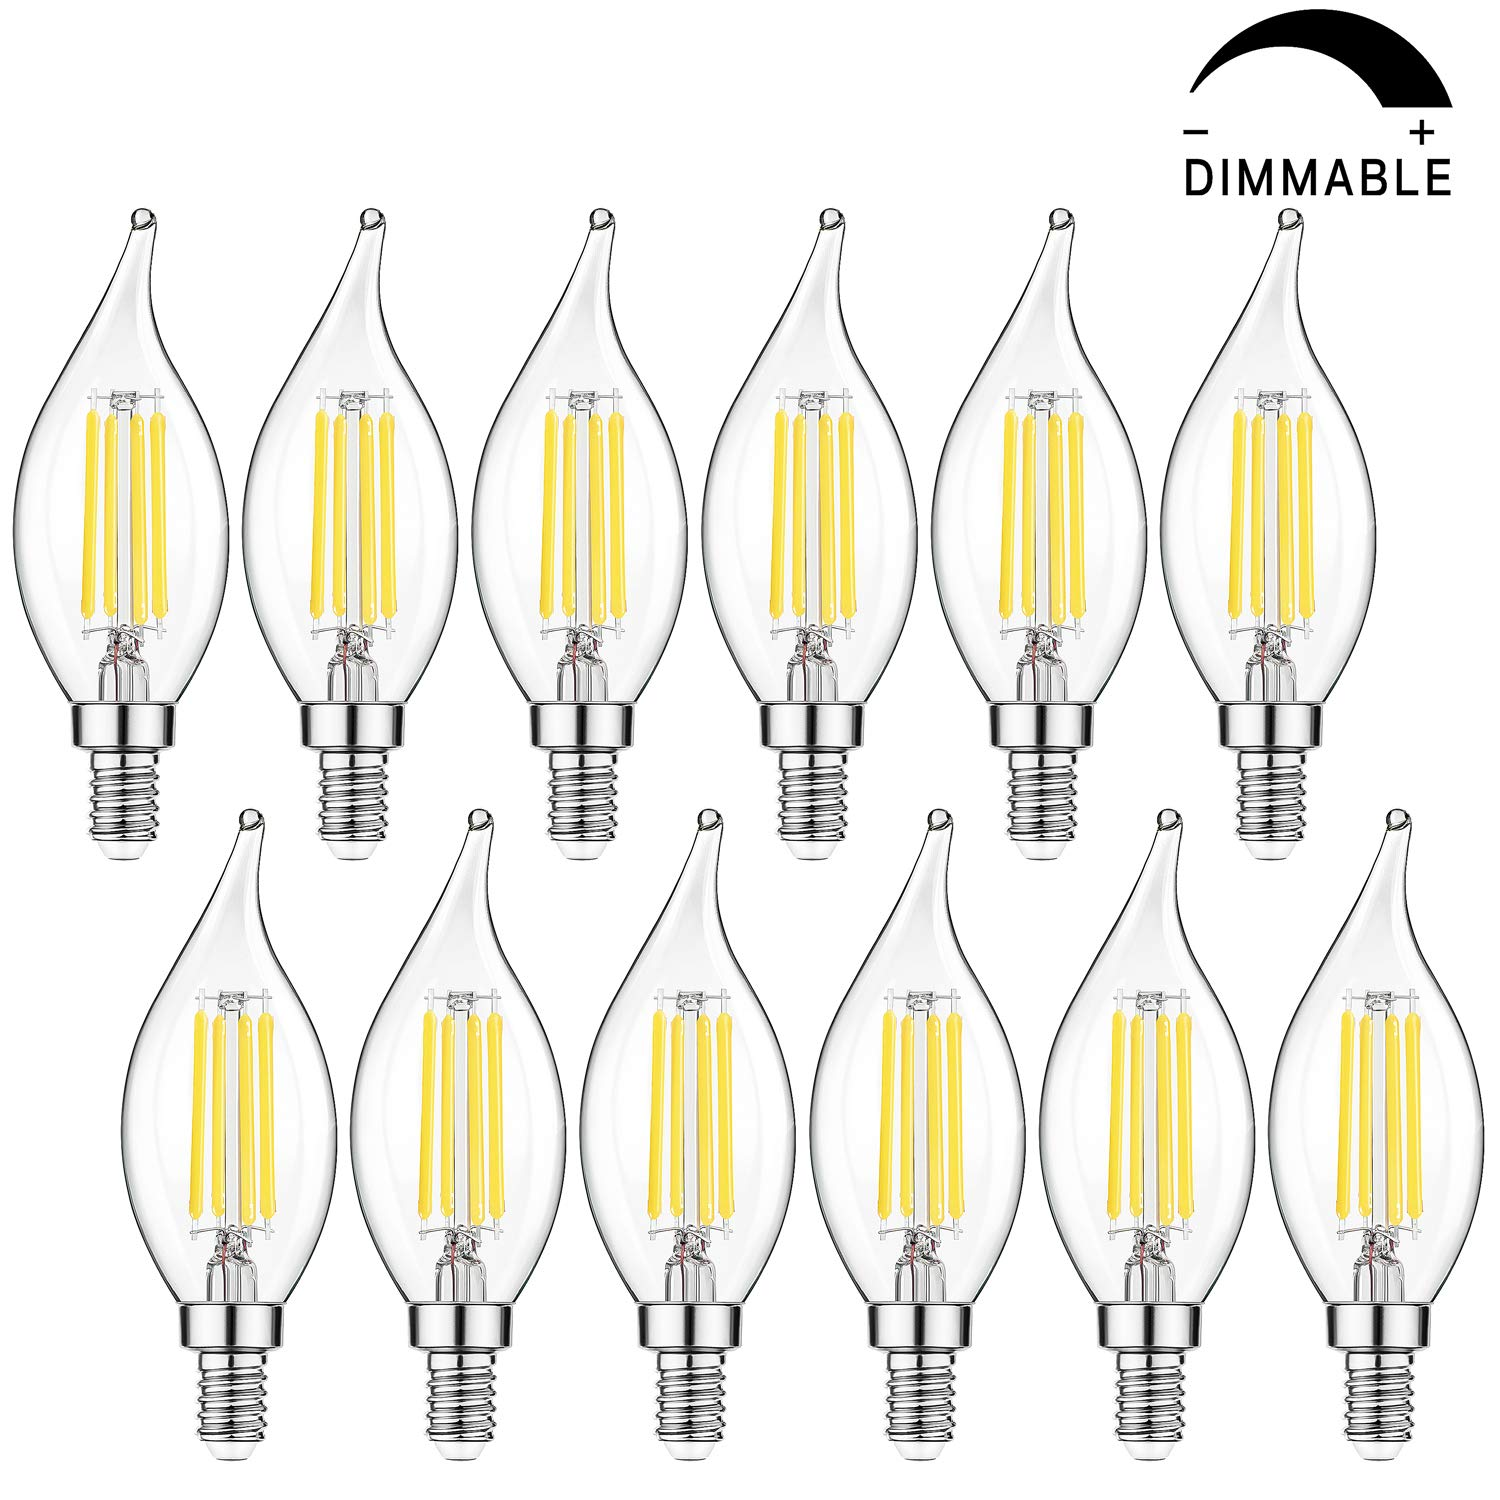 Dimmable E12 Candelabra LED Bulbs 40W Equivalent, Daylight White 5000K Flame Tip LED Chandelier Light Bulbs 4W, CA11 Vintage Filament LED Candle Bulb with Decorative Candelabra Base, 12 Packs